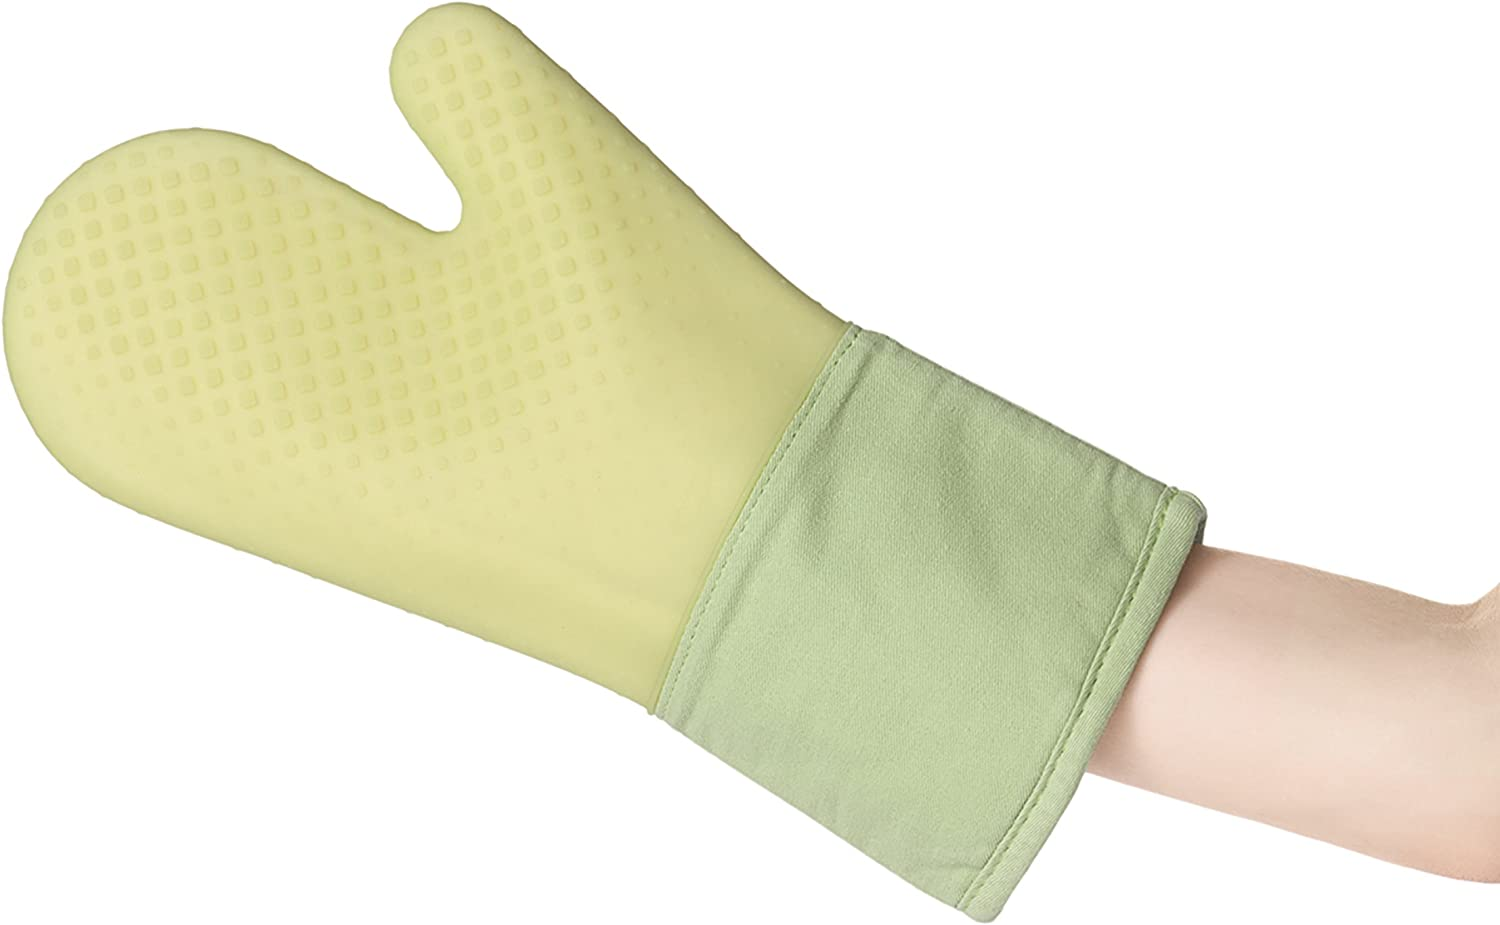 OXO Good Grips Silicone Oven Mitt - Sage